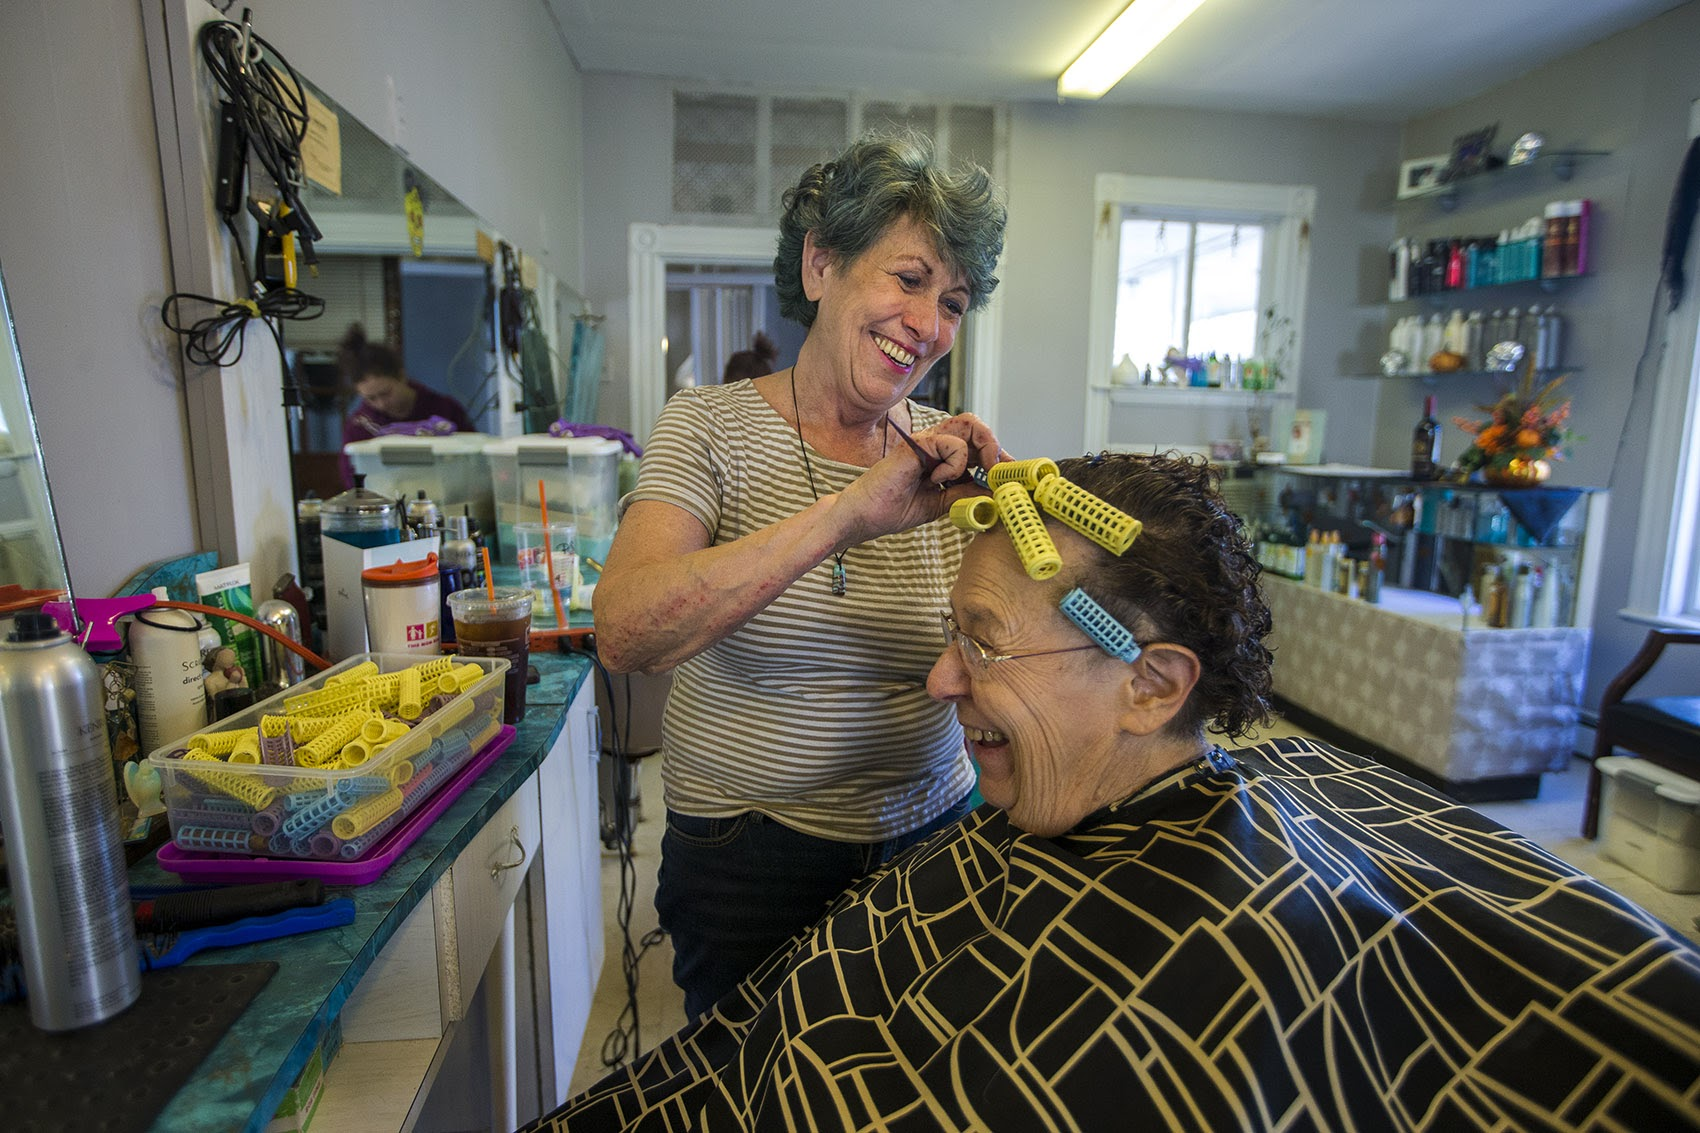 Judy Wilkins calls herself the poster child for a new type of cancertherapy called CAR-T. As she is having a laugh, Wilkins is putting hair rollers into Annina McCully's hair at her salon in Woburn. (Jesse Costa/WBUR)